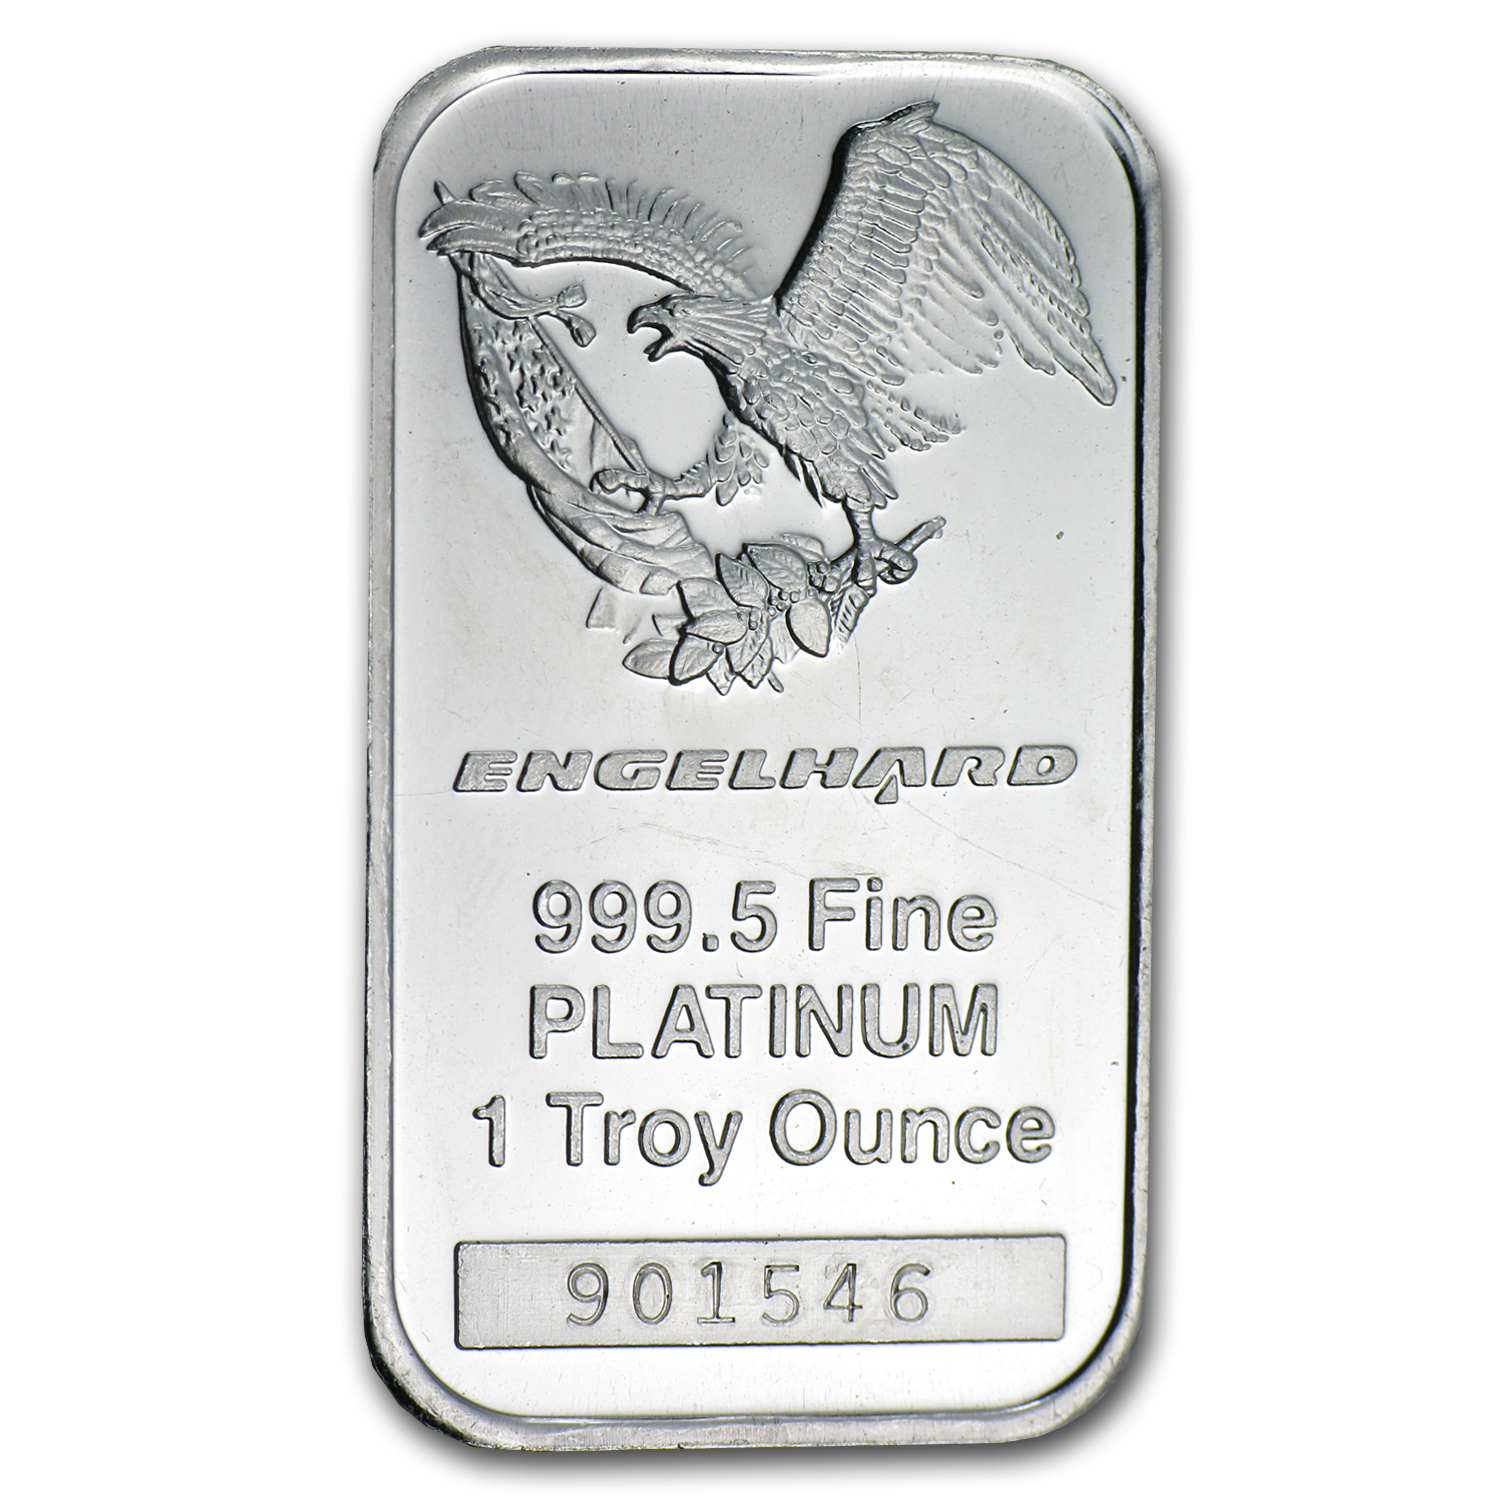 1 oz Platinum Bar - Engelhard (.9995 Fine, Eagle logo, No Assay)